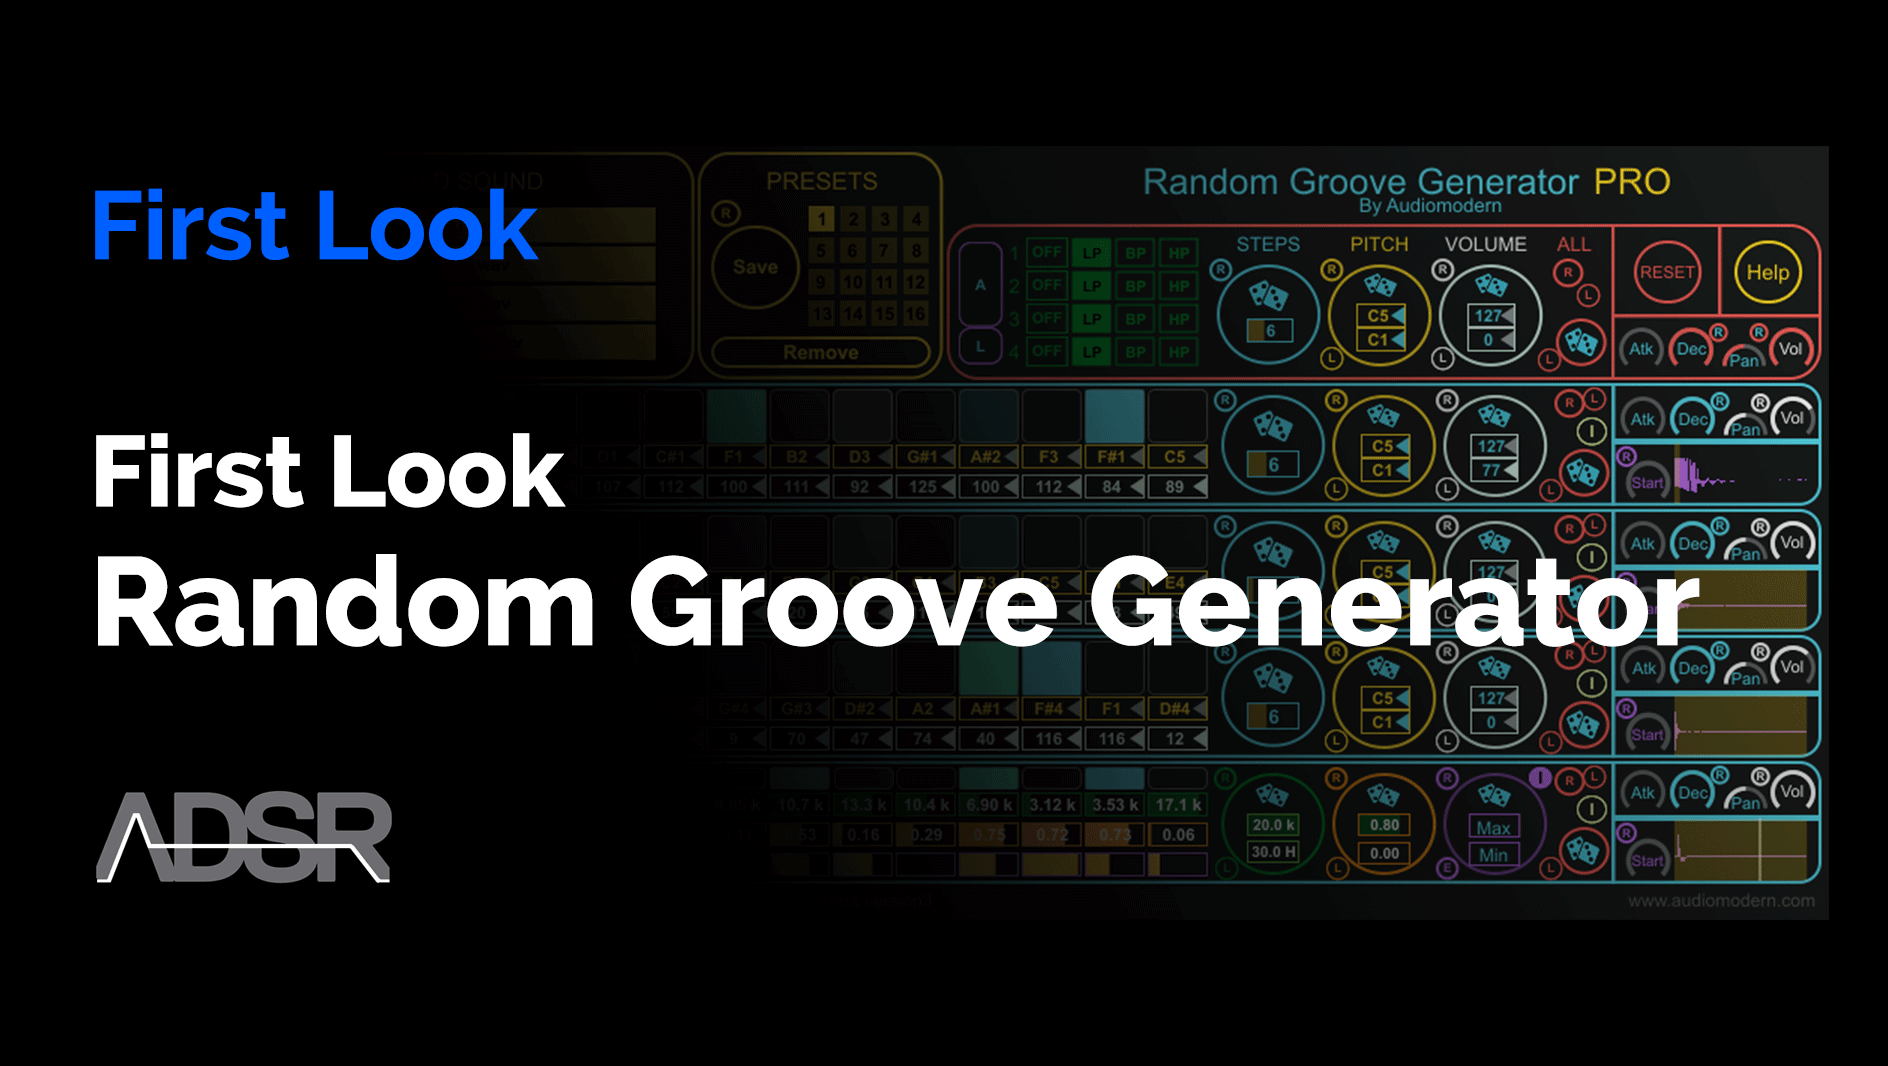 Video related to Random Groove Generator PRO